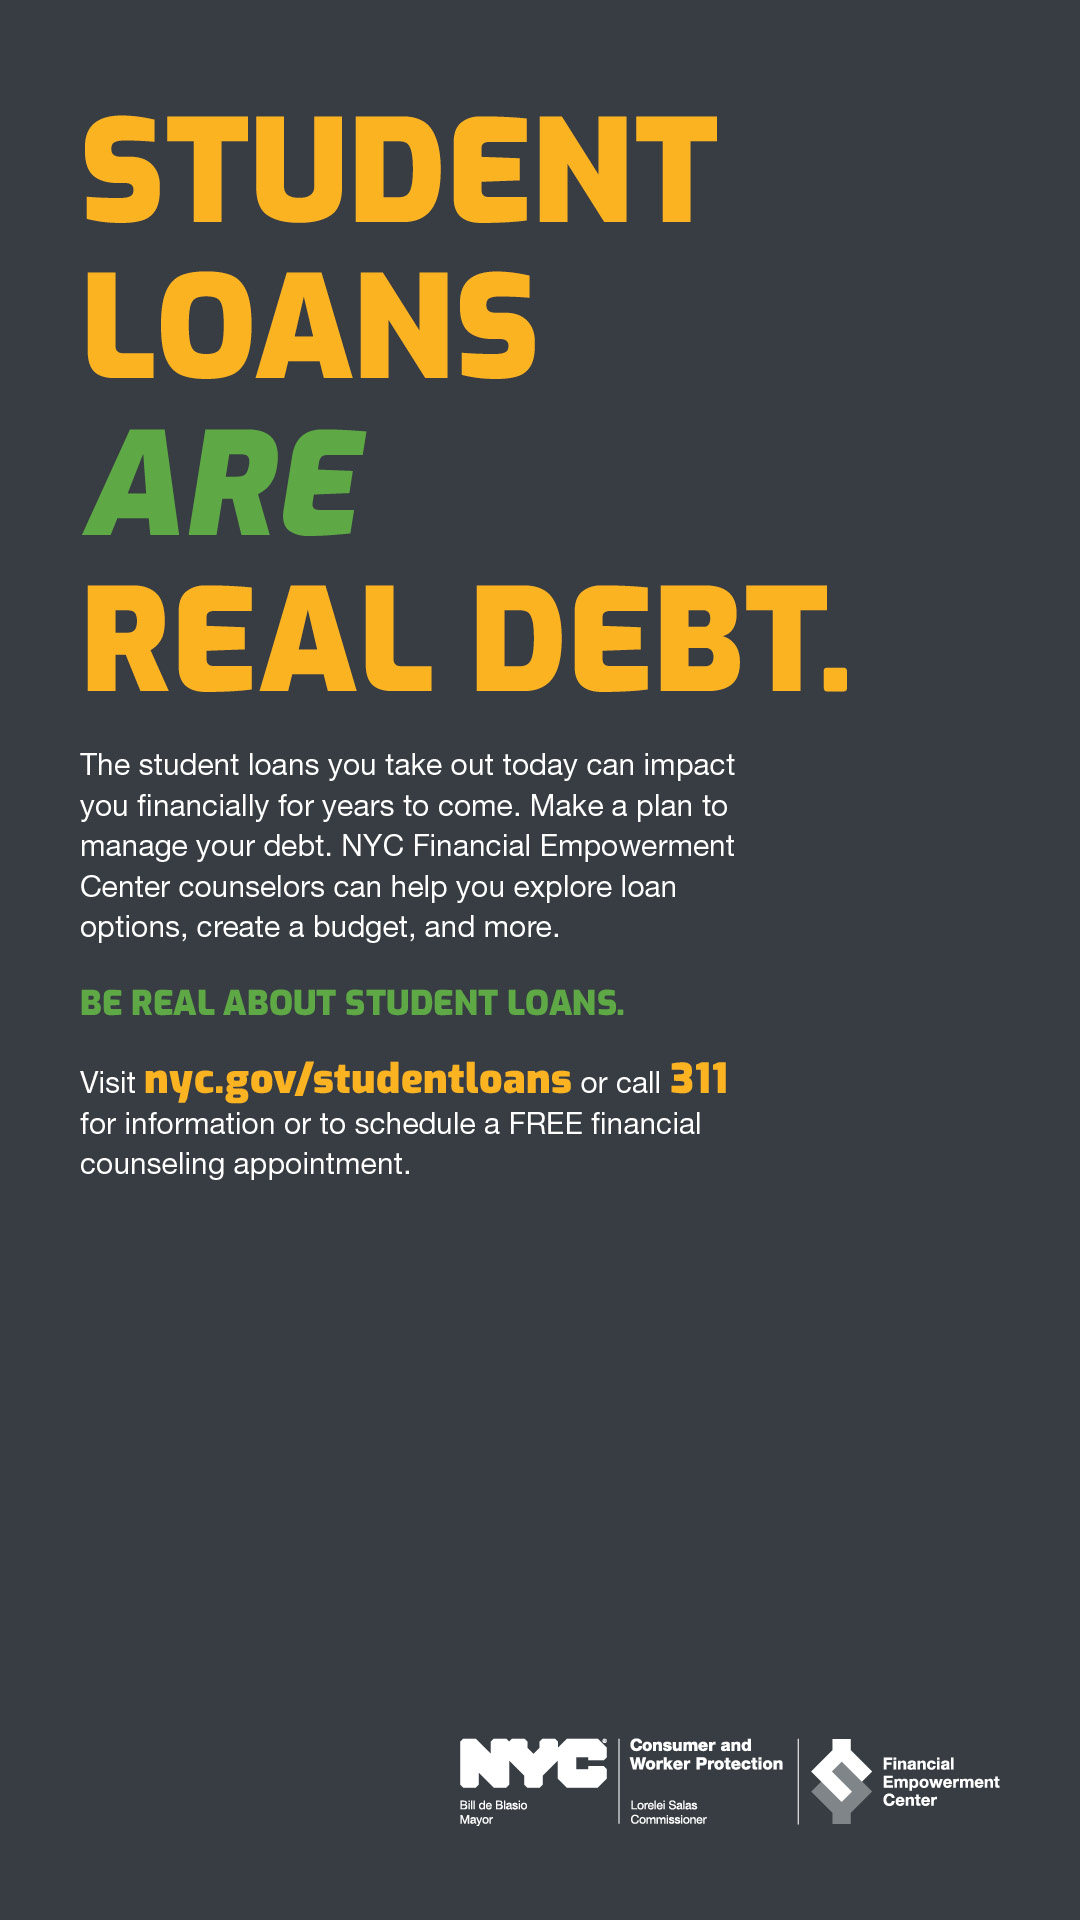 Ad with text STUDENT LOANS ARE REAL DEBT